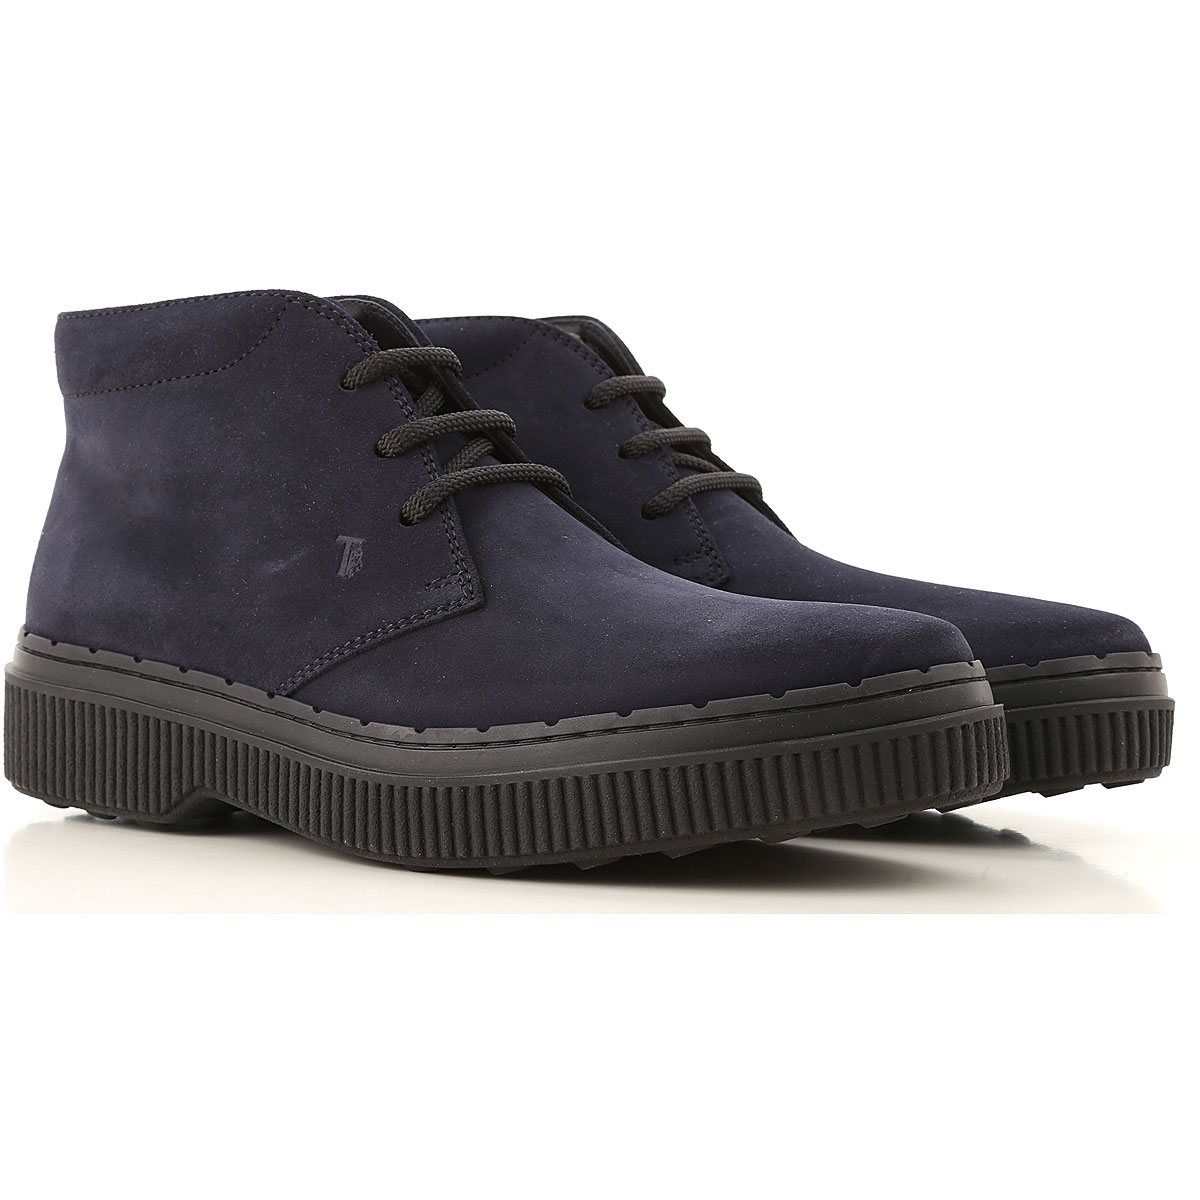 Tods Boots for Men, Booties On Sale, Midnight Blue, Suede leather, 2019, 6 6.5 8